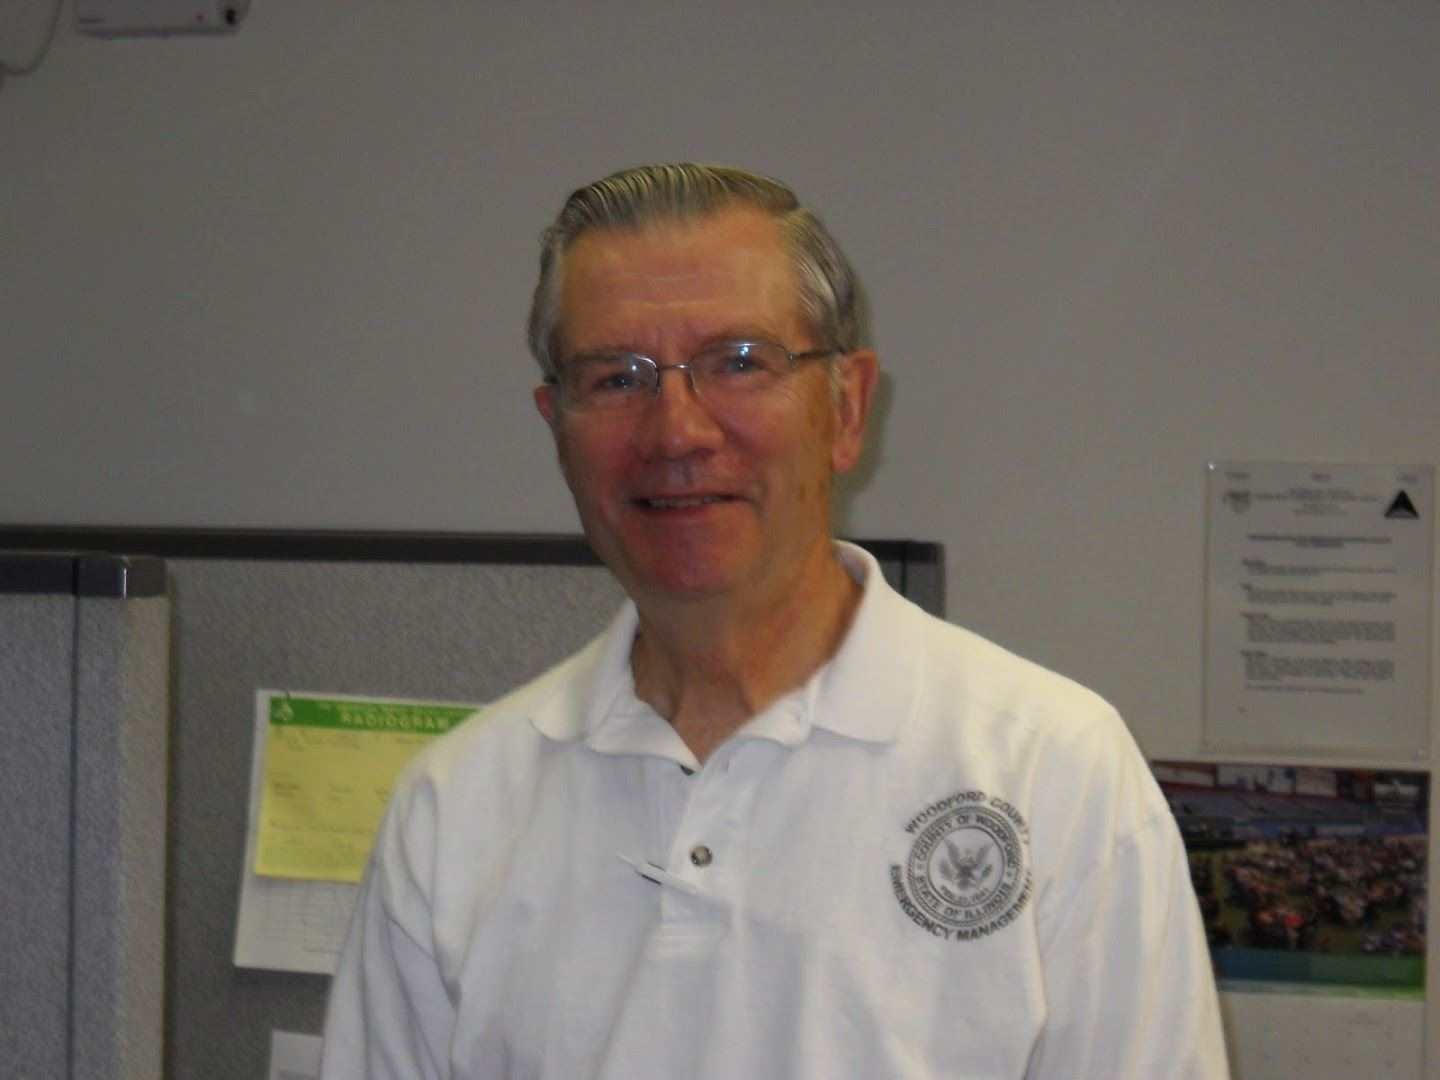 Curt Rocke, Emergency Management Communications